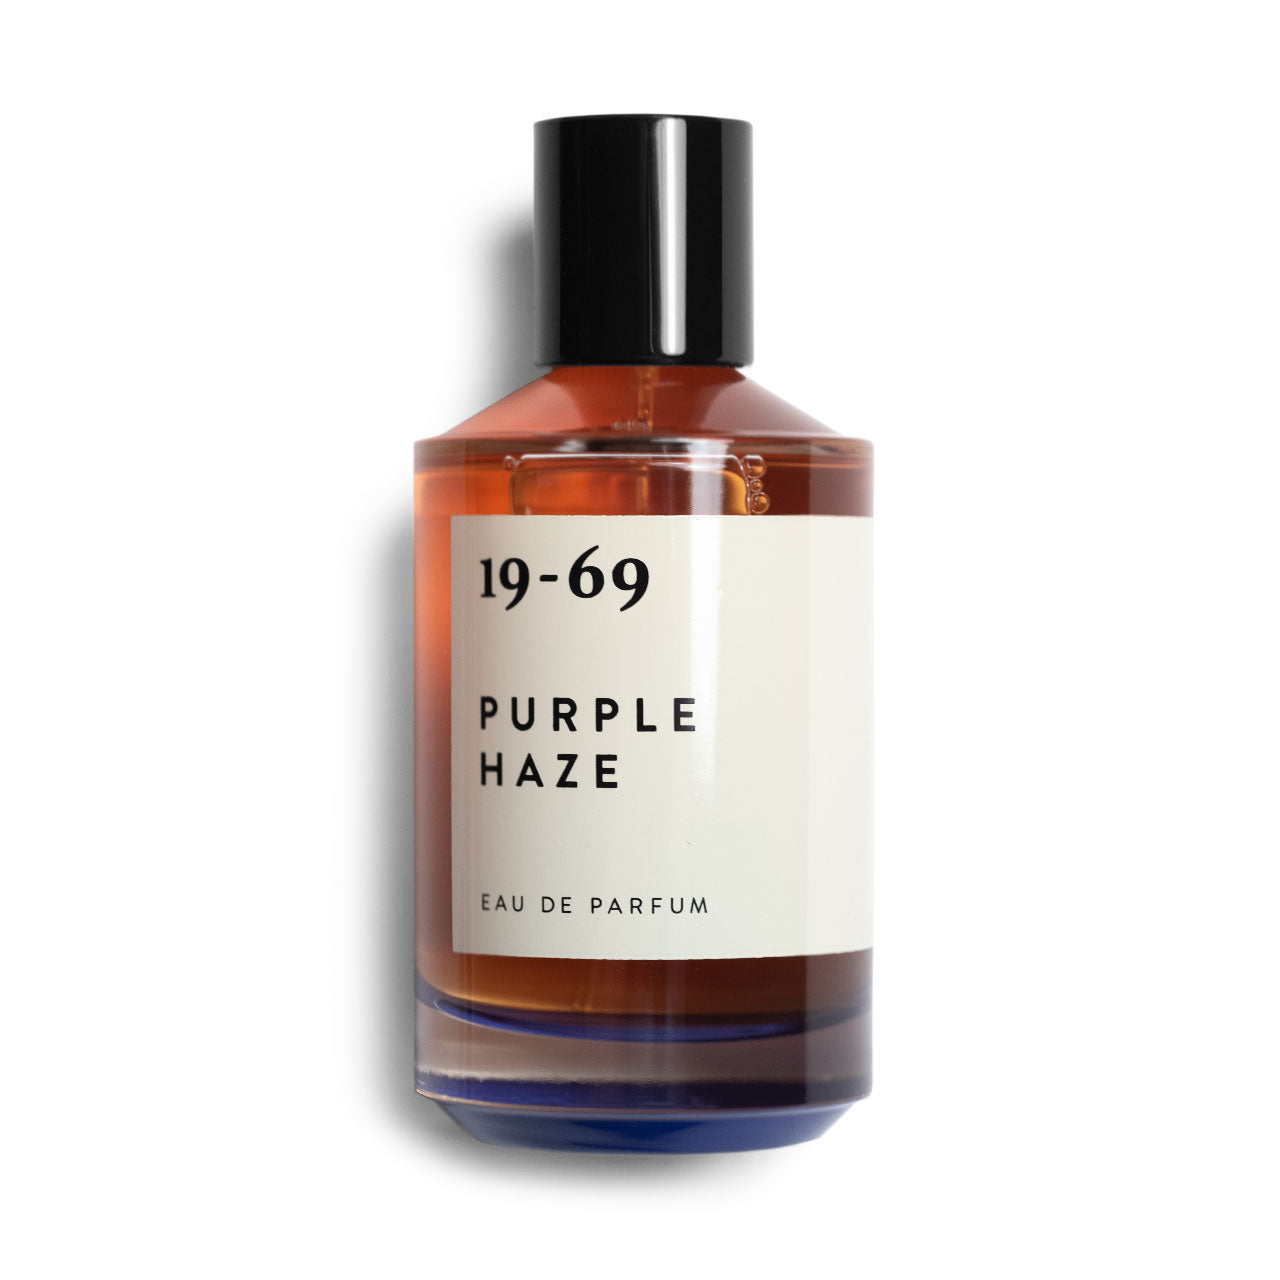 19-69 Purple Haze Eau De Parfum